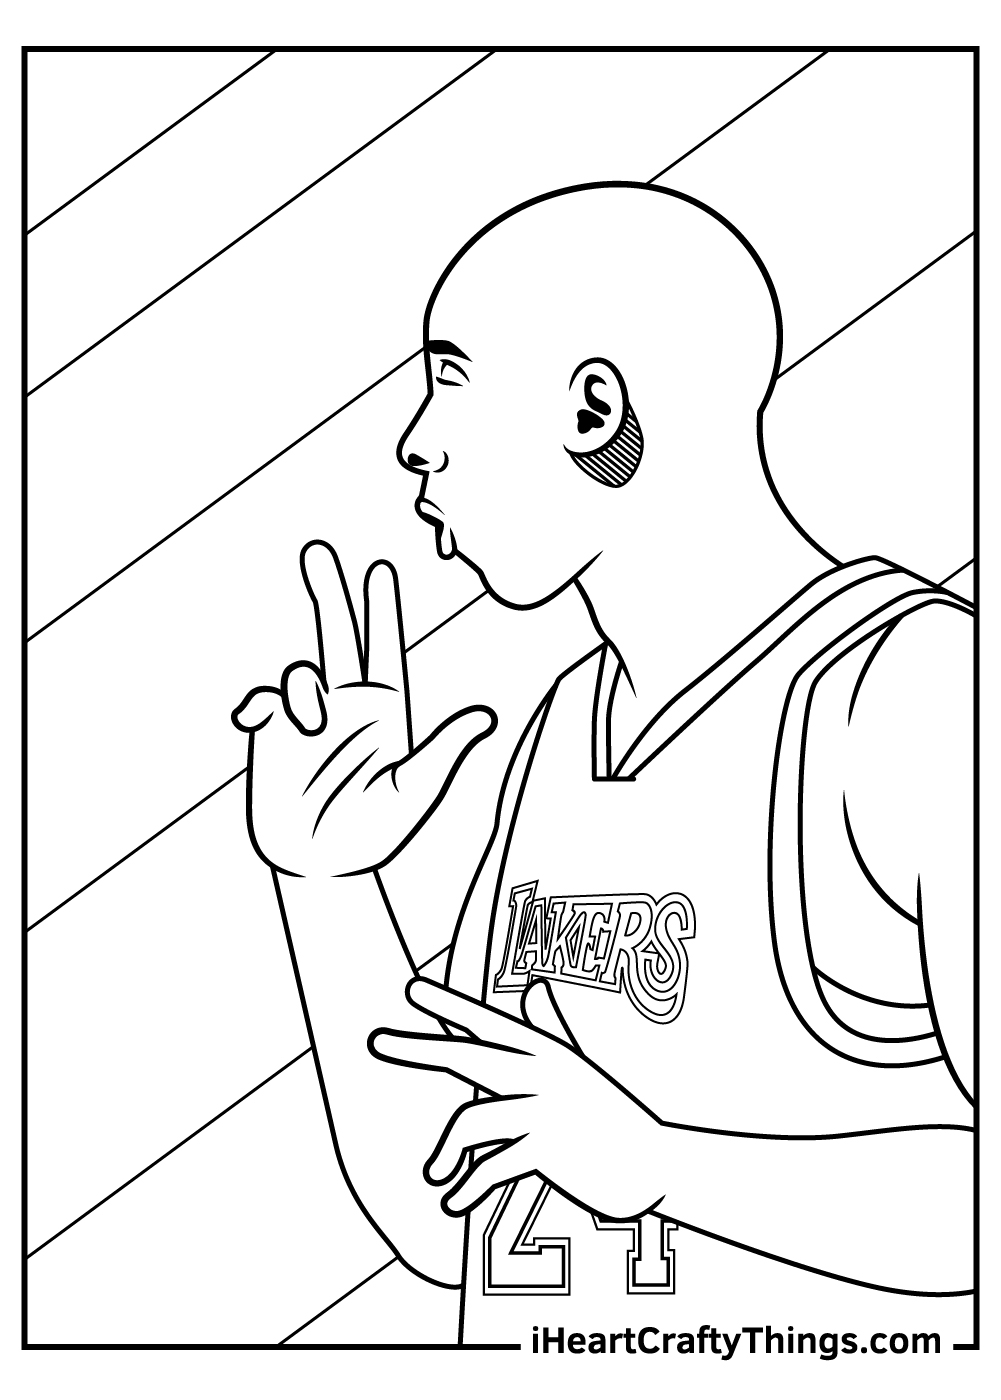 Kobe Bryant Coloring Pages for adults